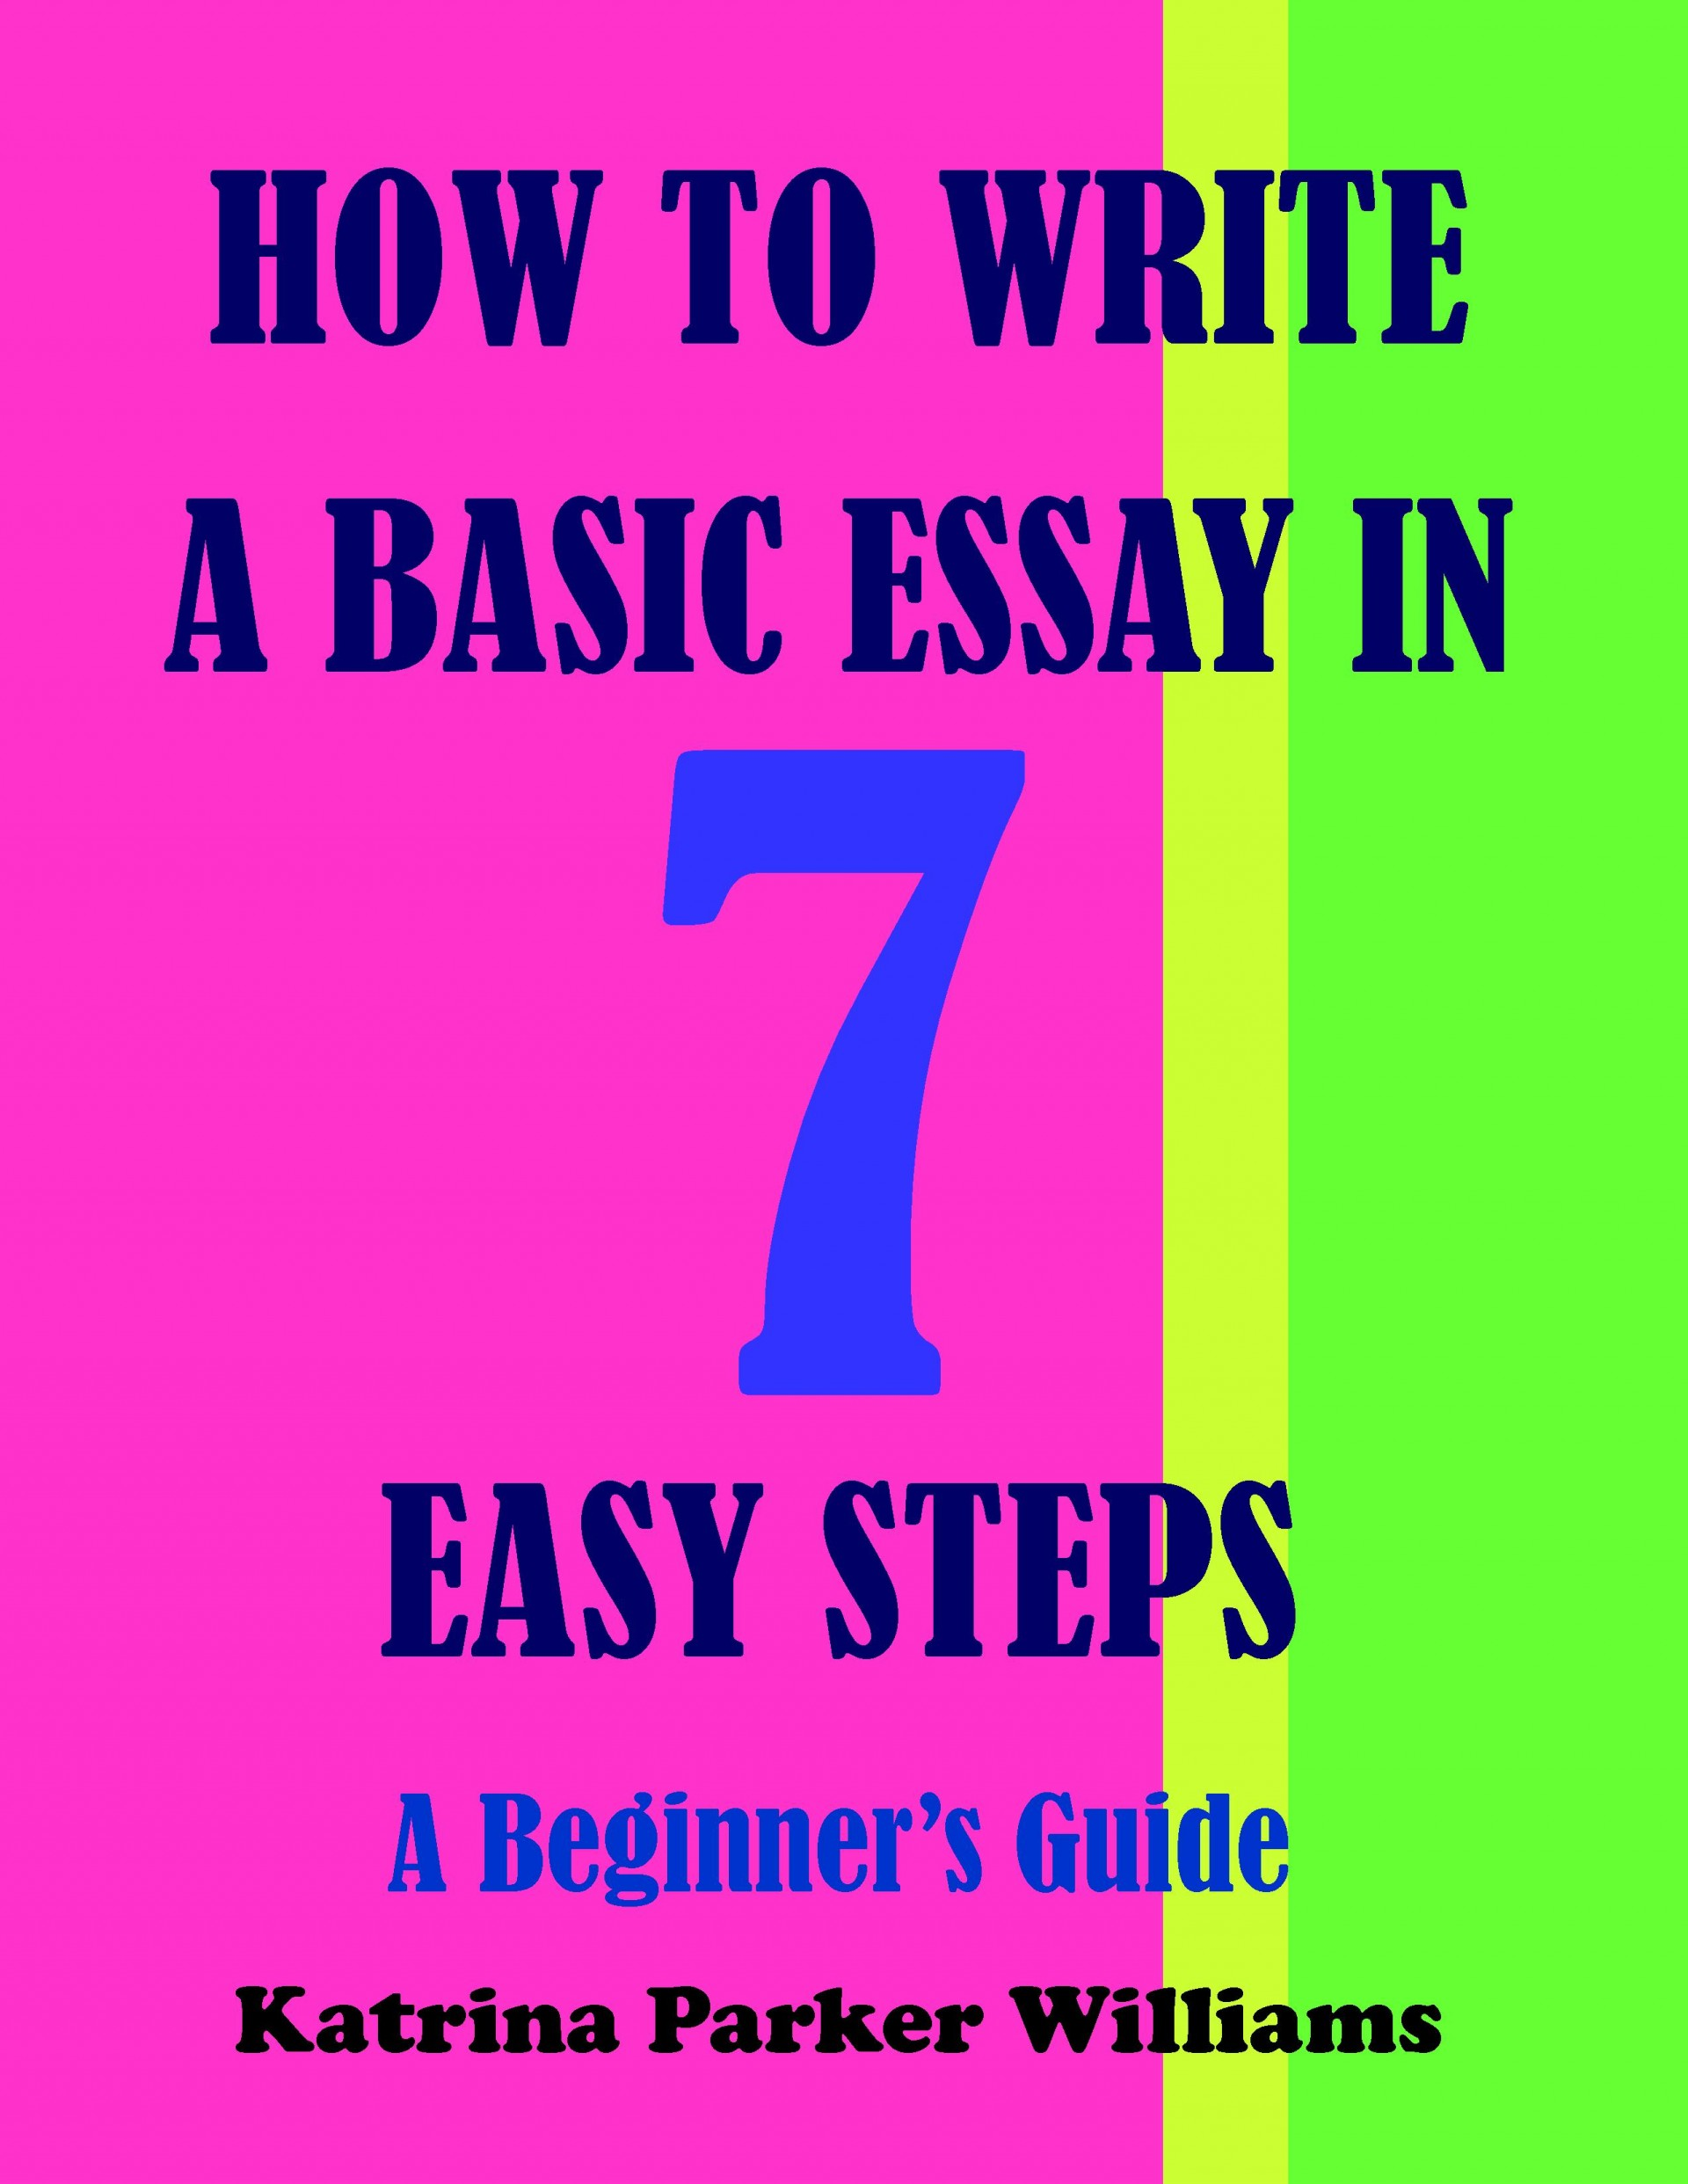 014 How To Write Basic Essay In Seven Easy Steps Writing An Stunning Middle School Argumentative 1920